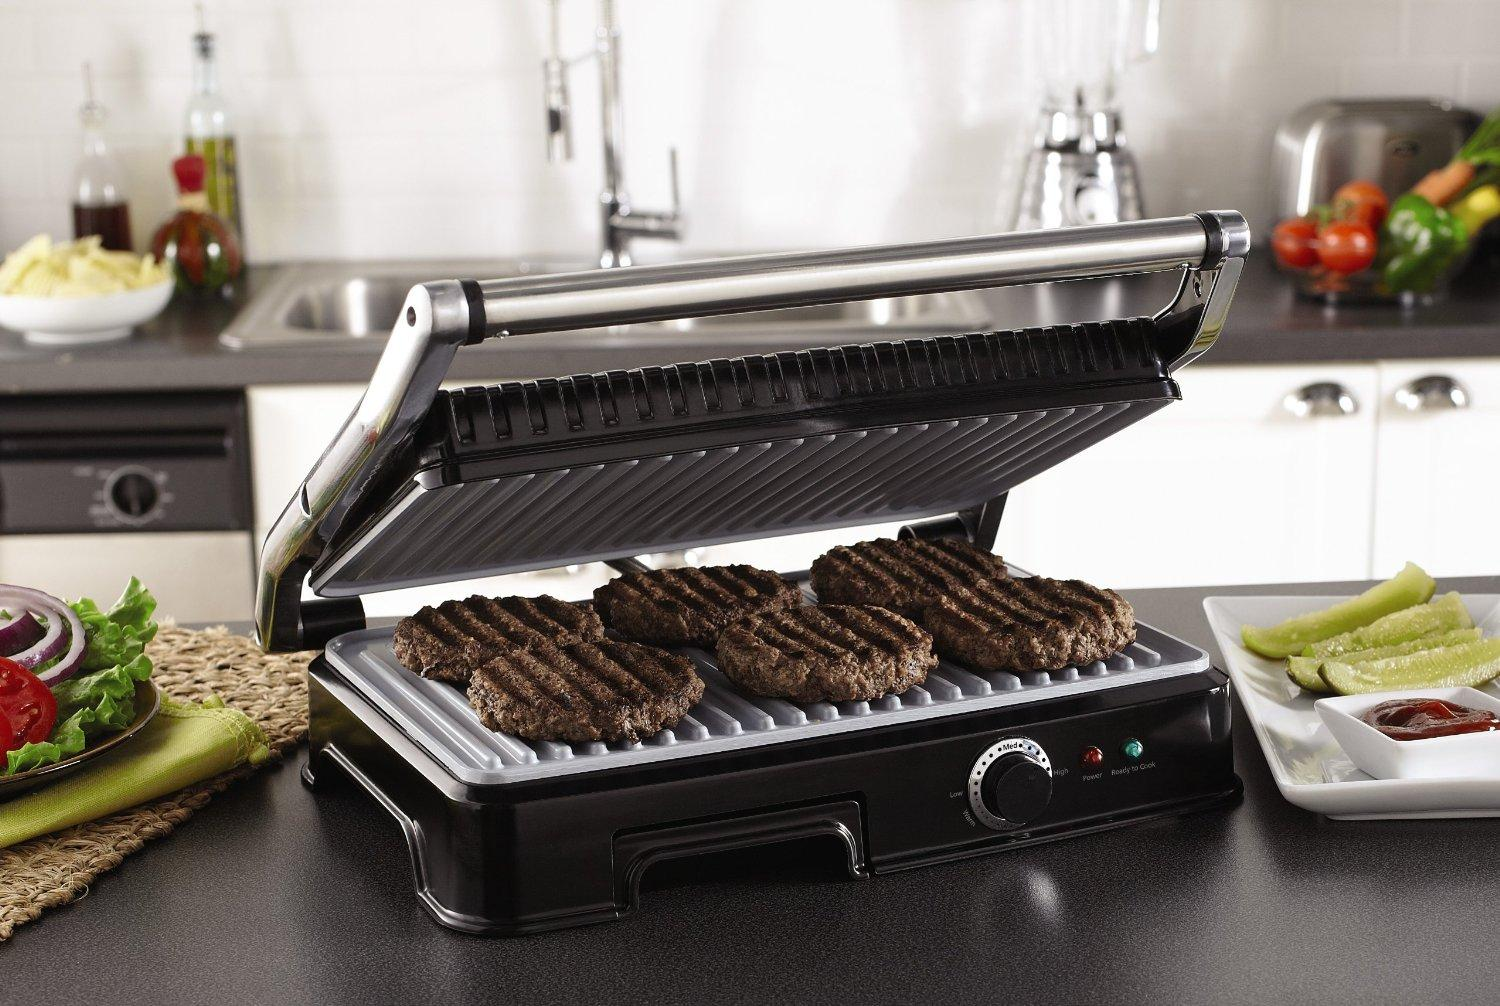 Extra Large Grilling Surface Accommodates Meals For The Entire Family